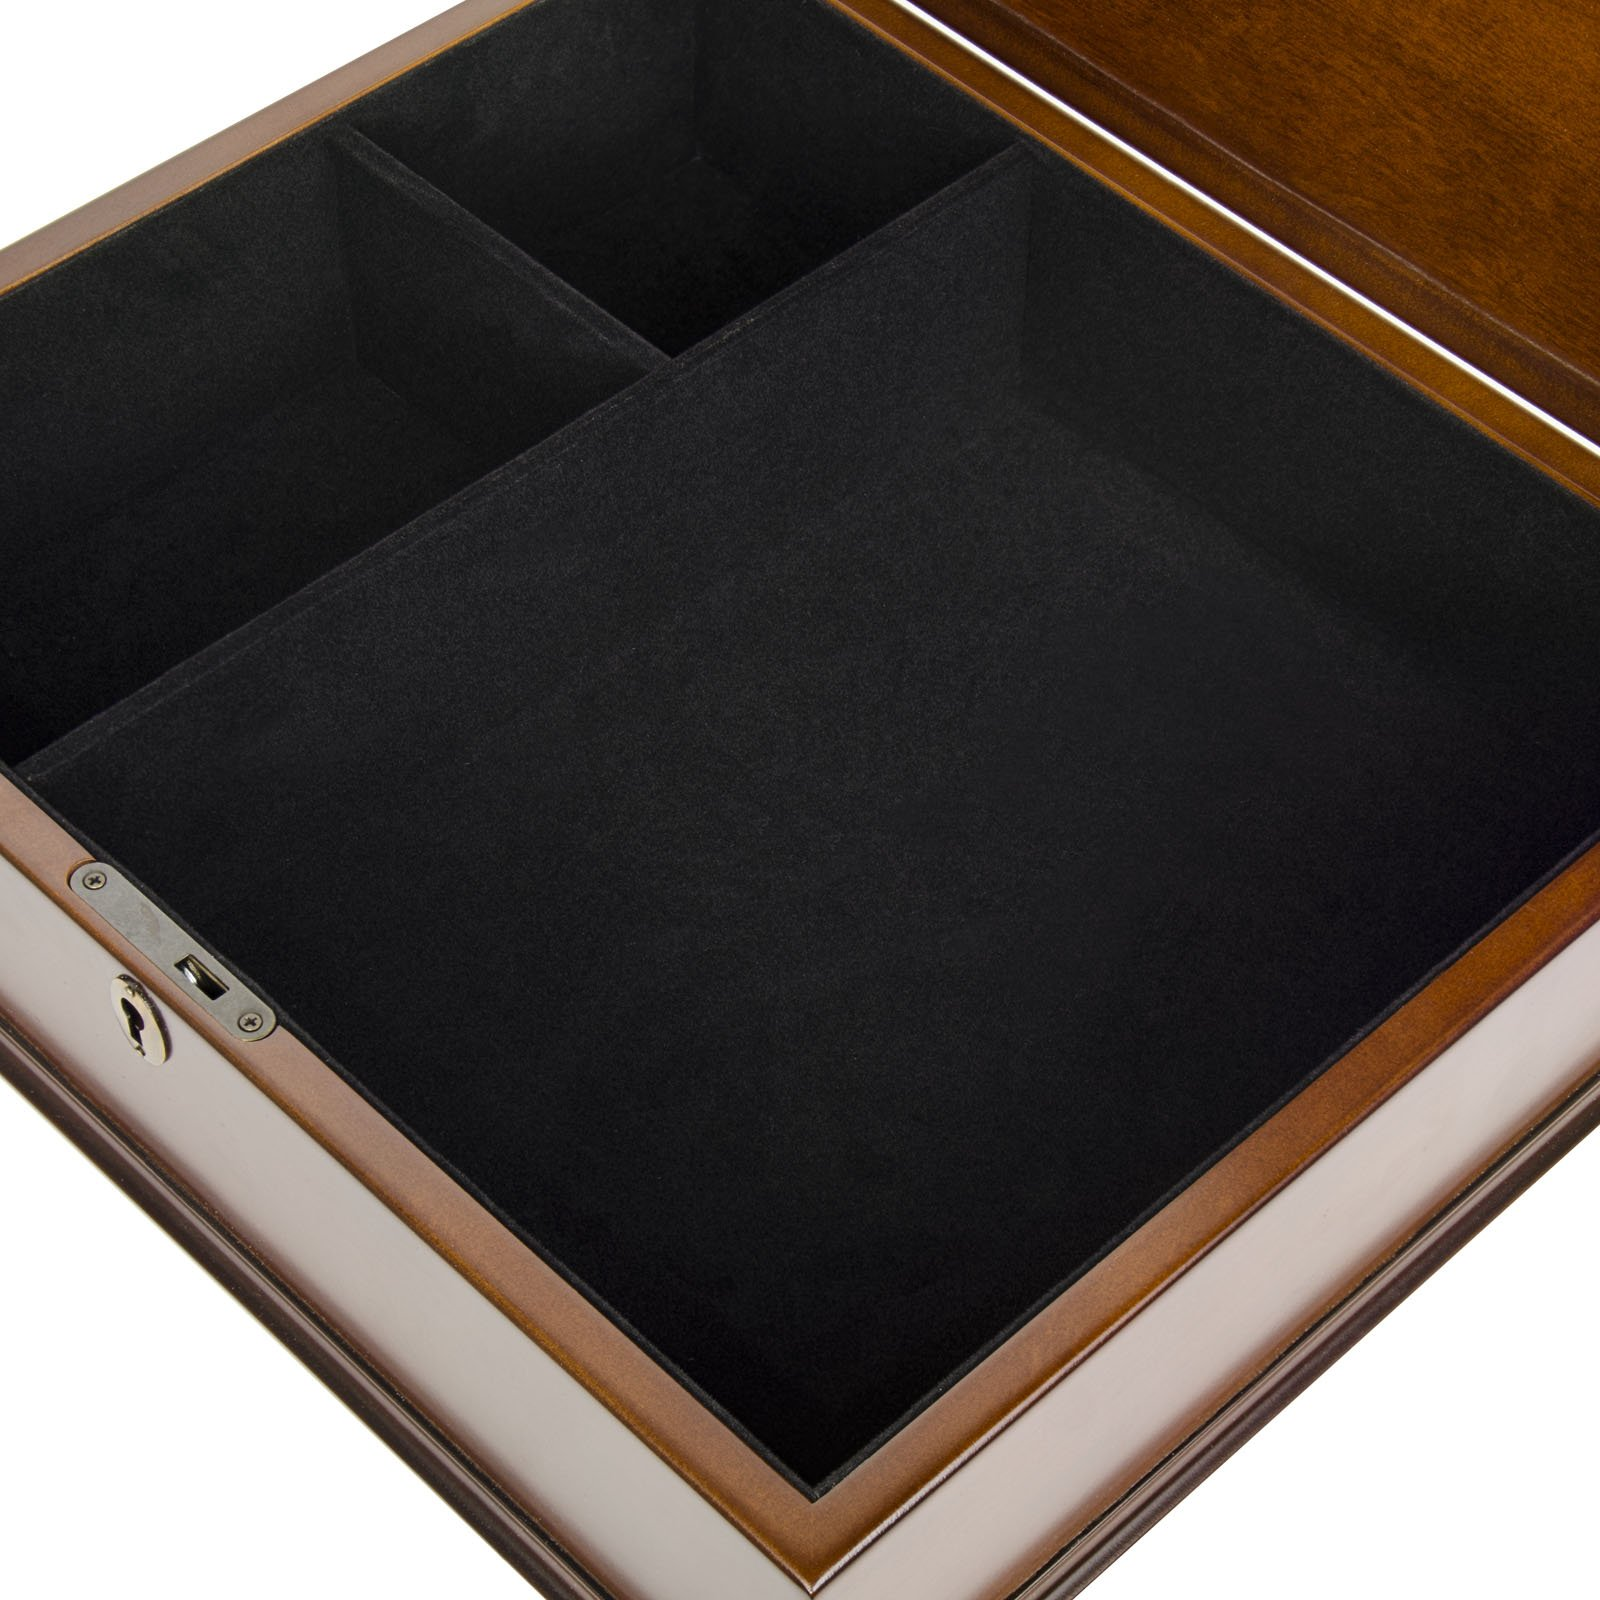 Large Romeo Memory Box Organizer Mahogany Wood Finish for Photo Album CD DVD USB & other Valuables Size 14 x 12 x 5 Inches by Arolly (Image #6)